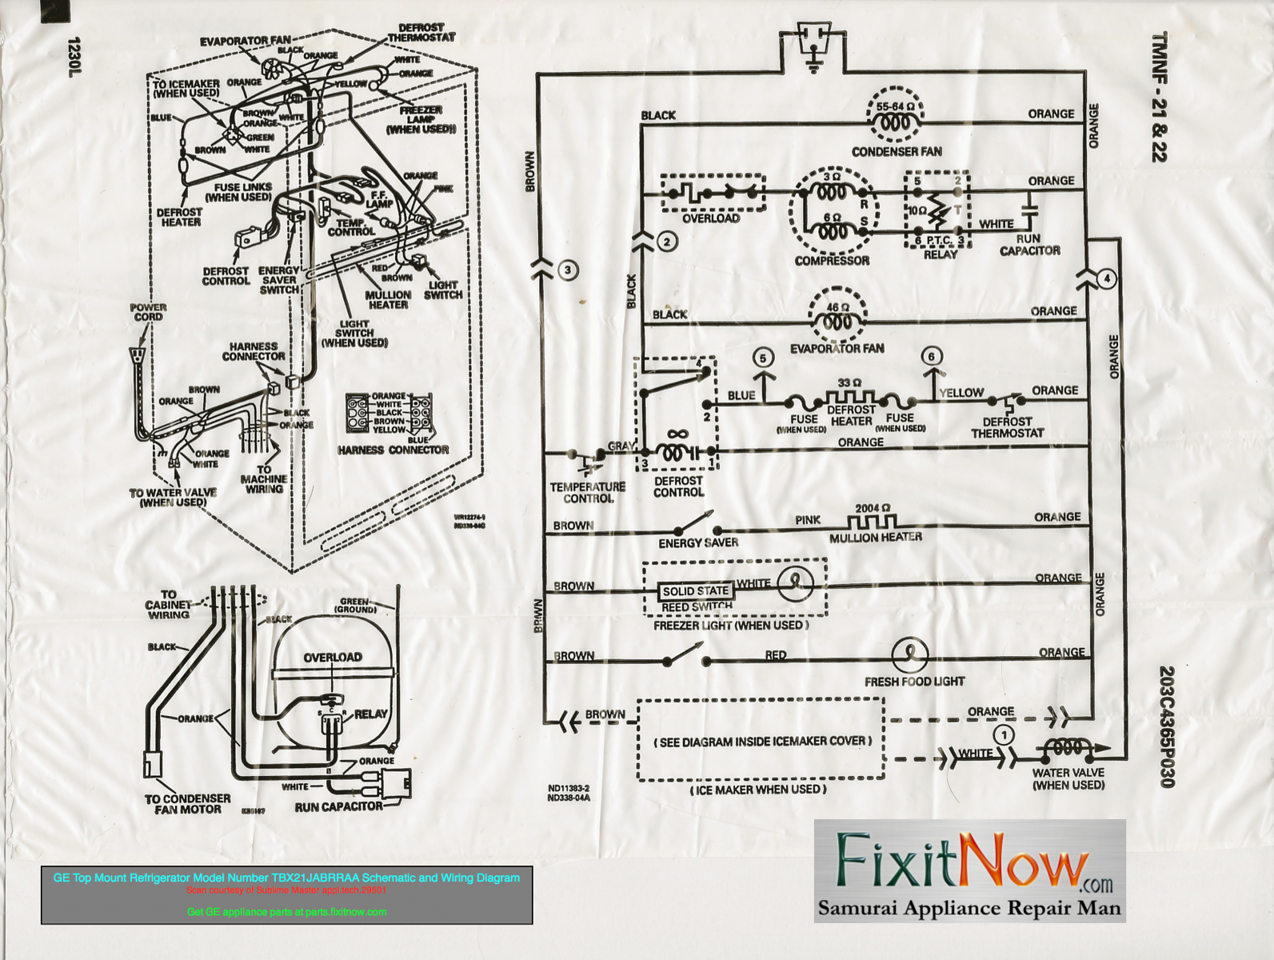 4904374061_e8eb3df6c6_o X2 wiring diagrams and schematics appliantology wiring diagram for ge refrigerator at n-0.co